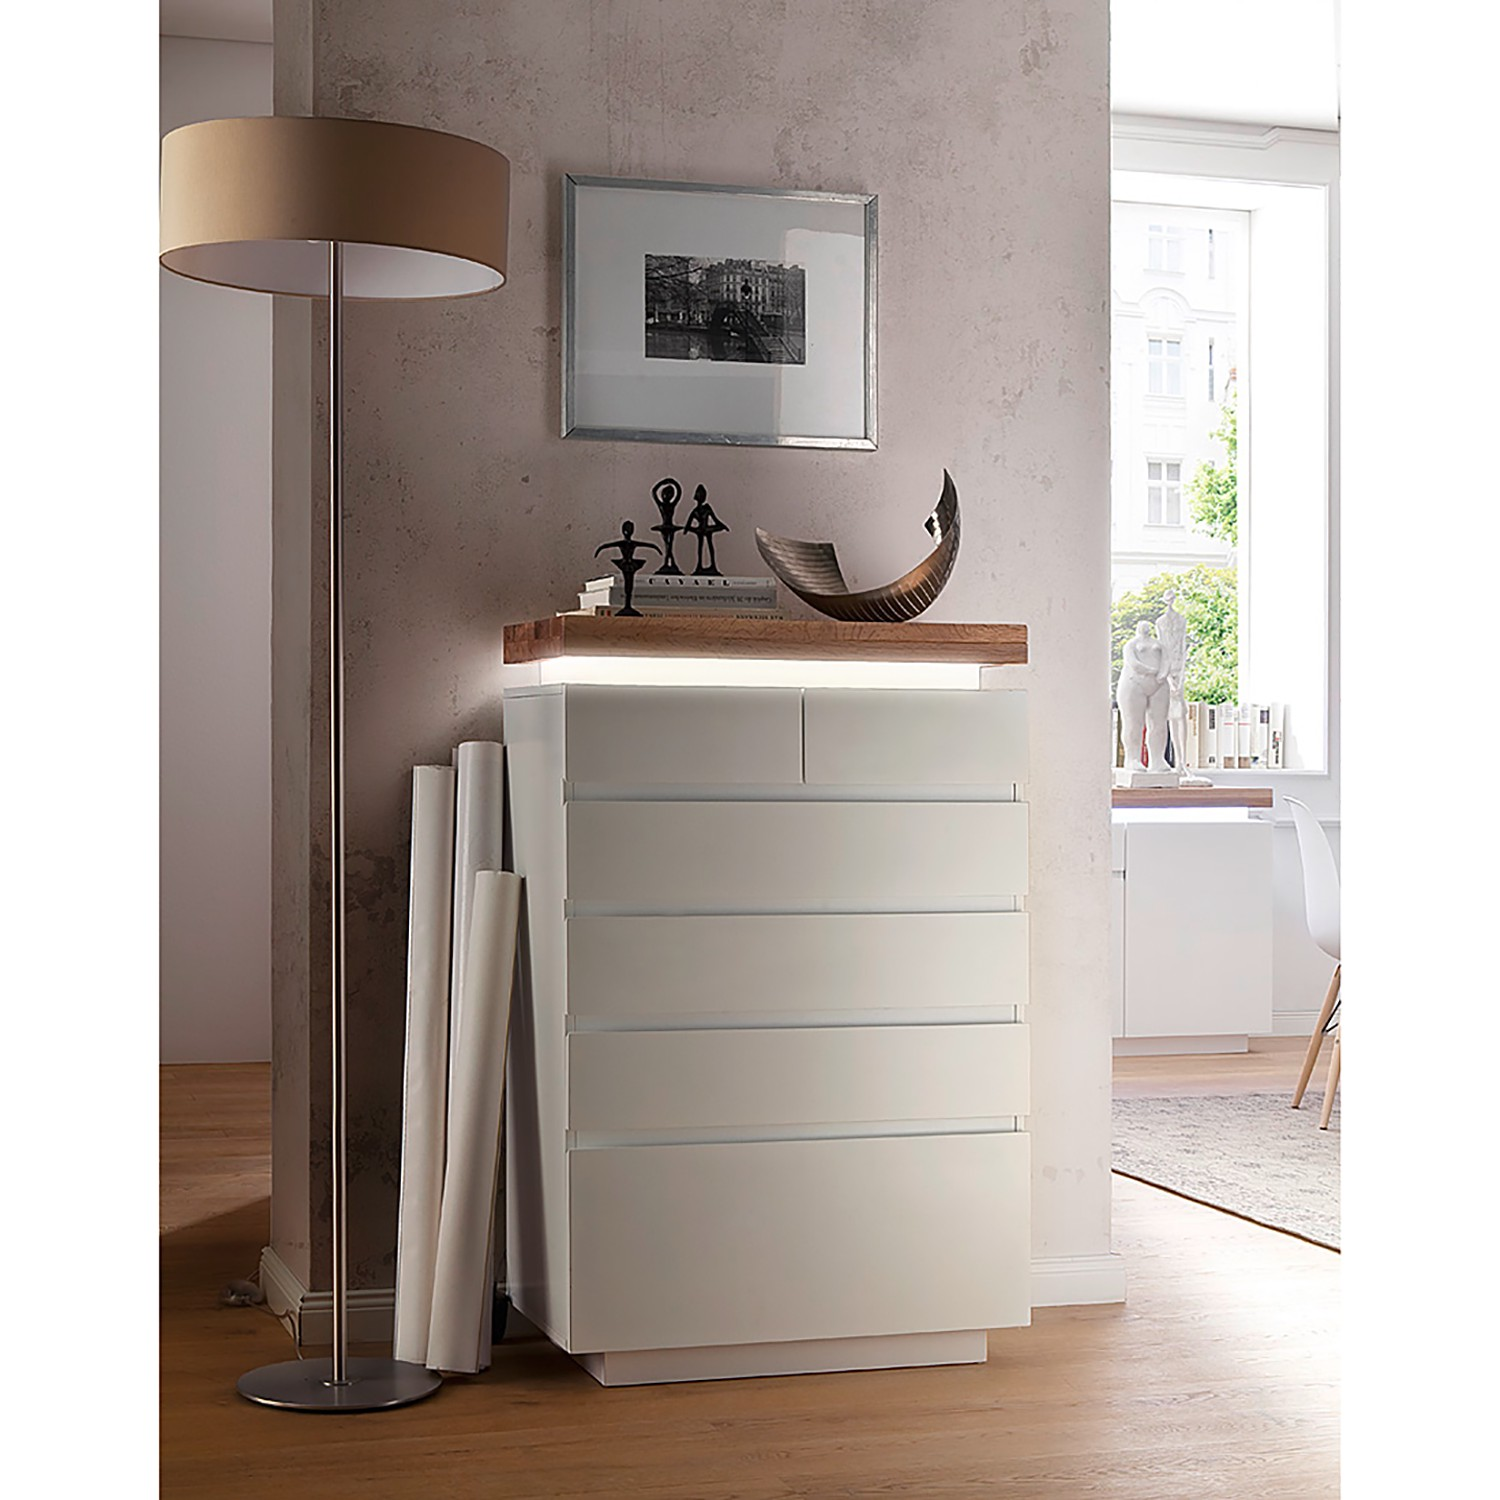 Commode Roble II (éclairage inclus)